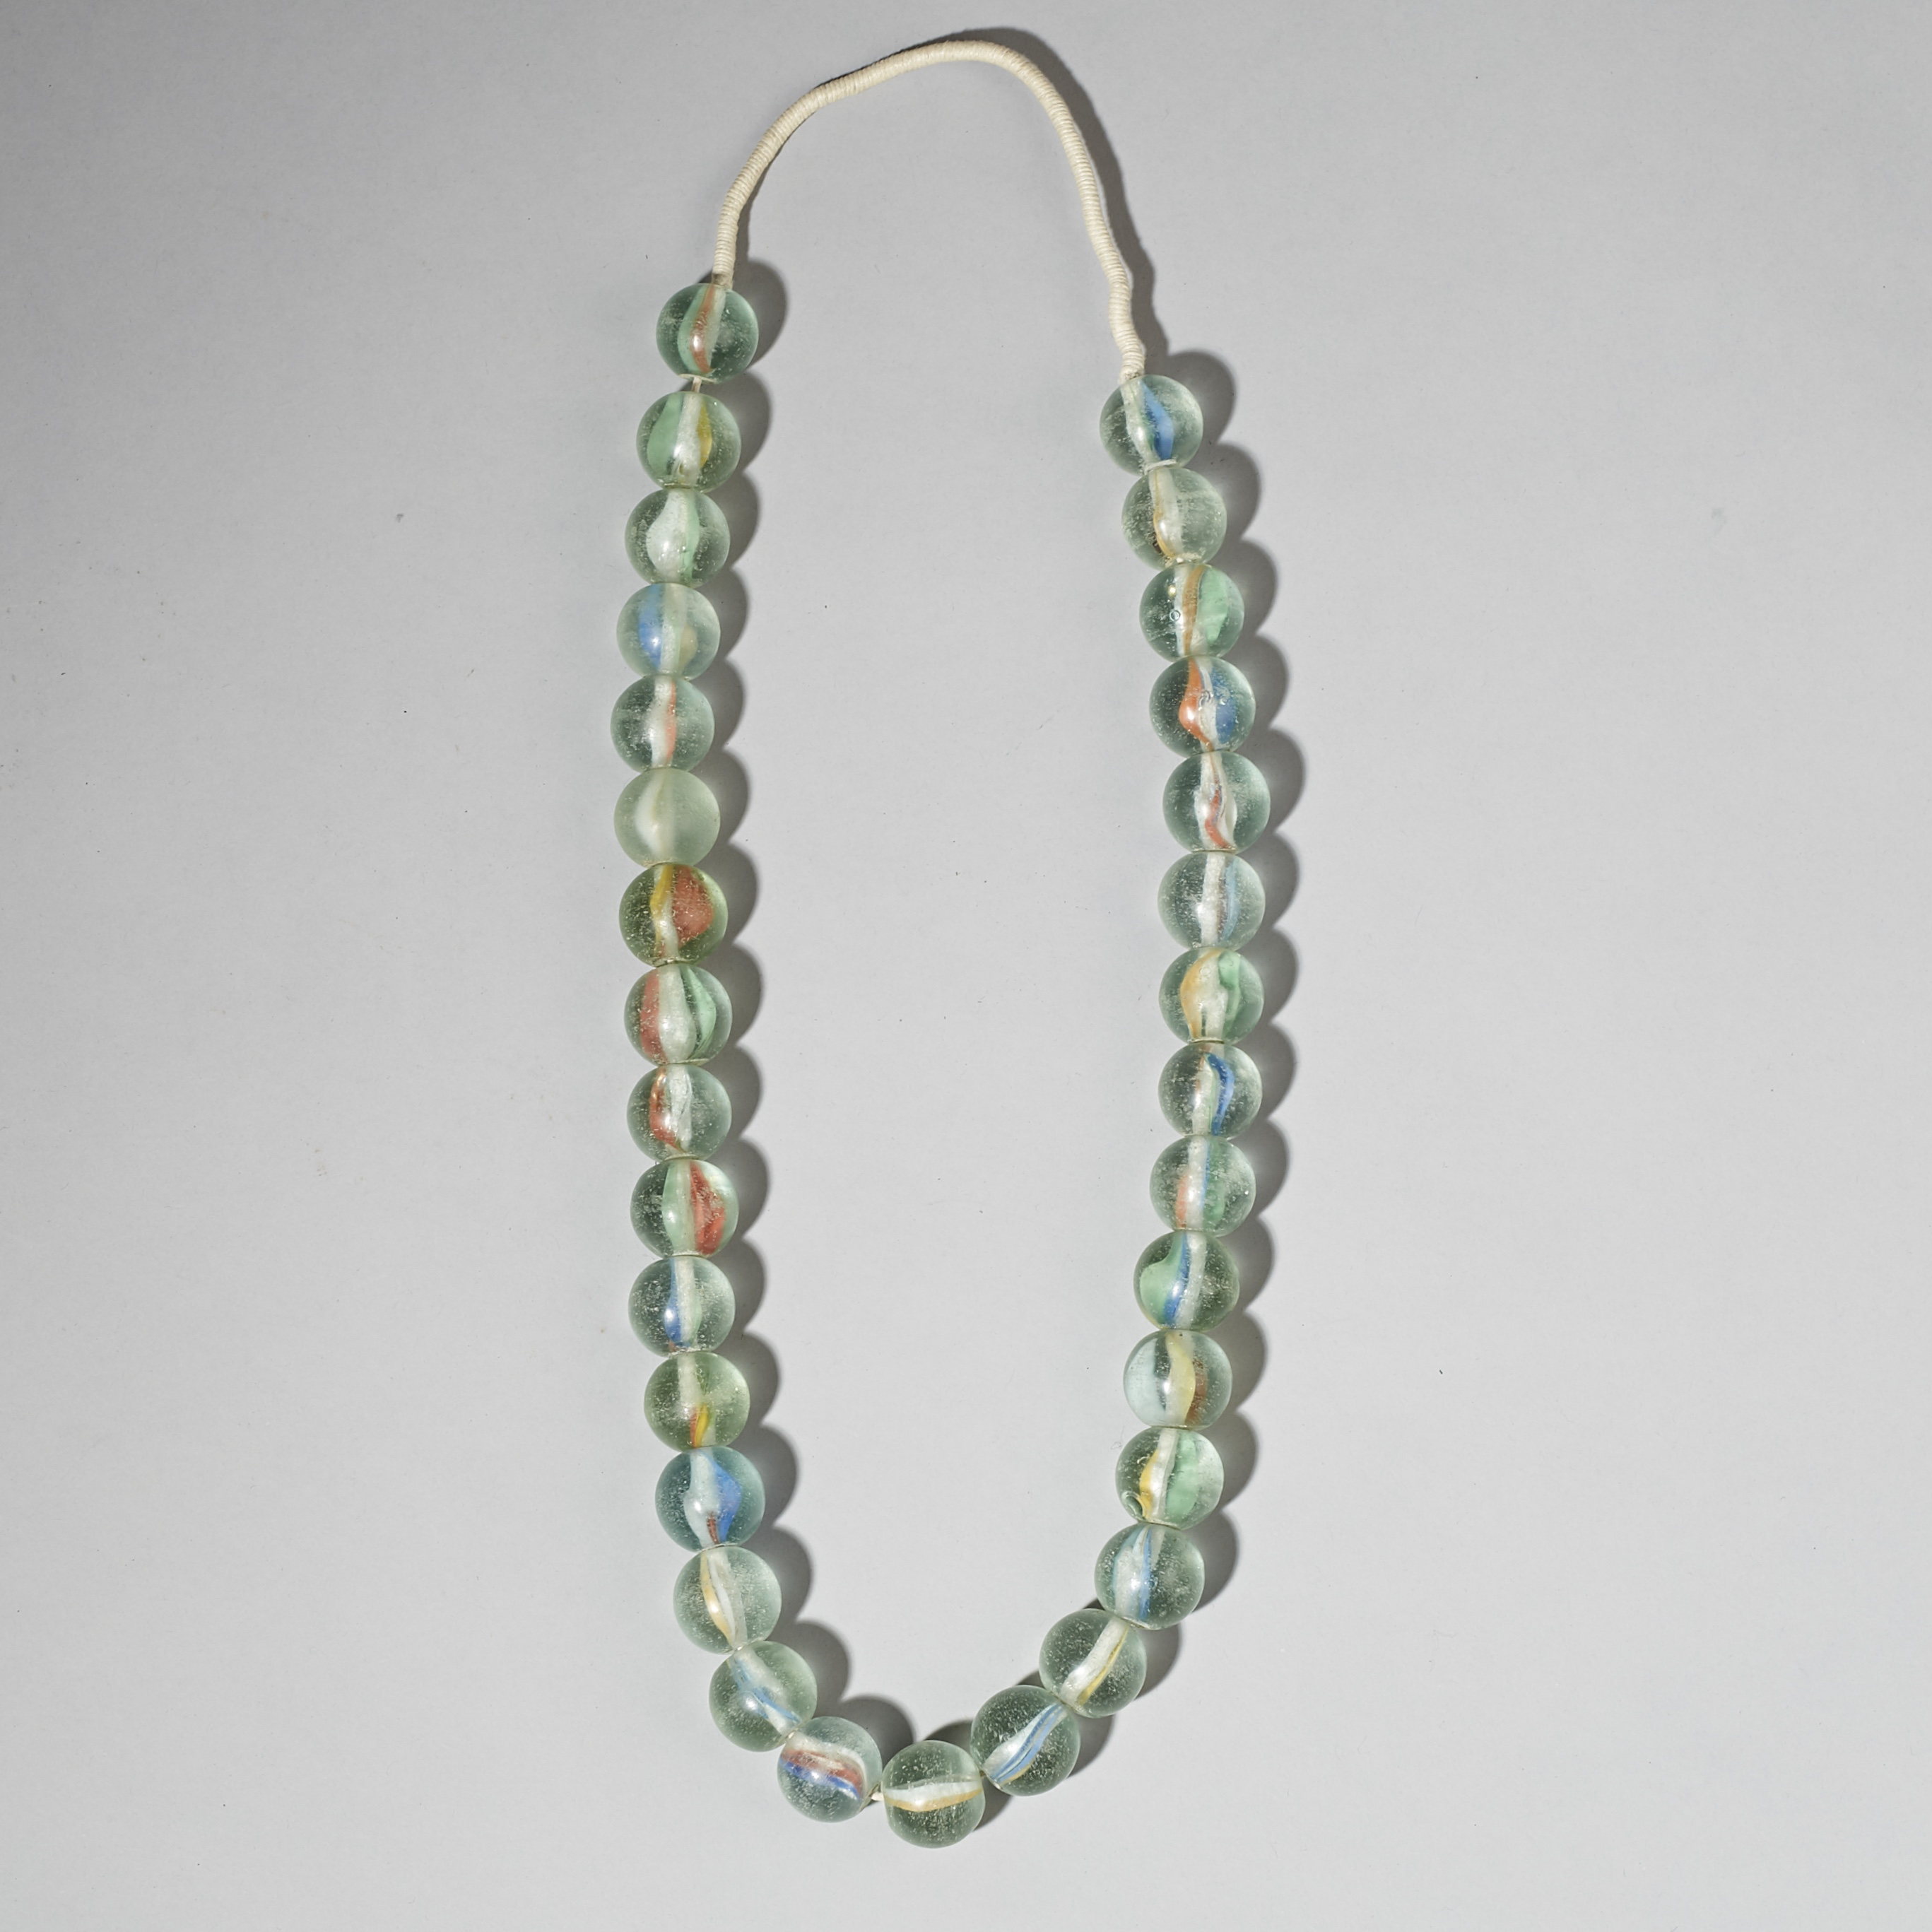 A LARGE PLAYING MARBLE- LIKE BEAD NECKLACE FROM INDONESIA ( No 3085 )